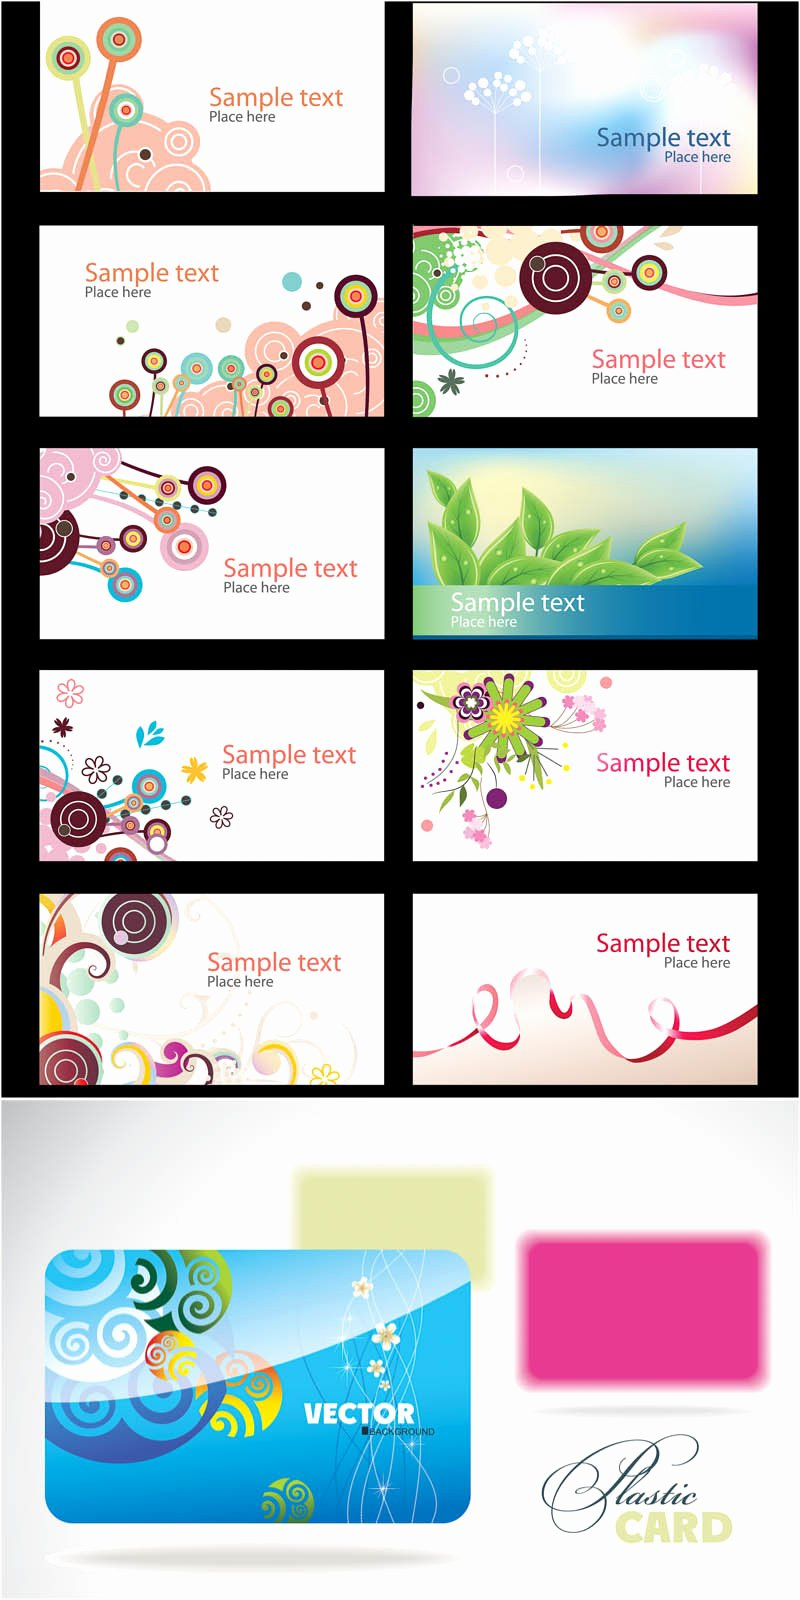 Business Cards Design Templates Vector